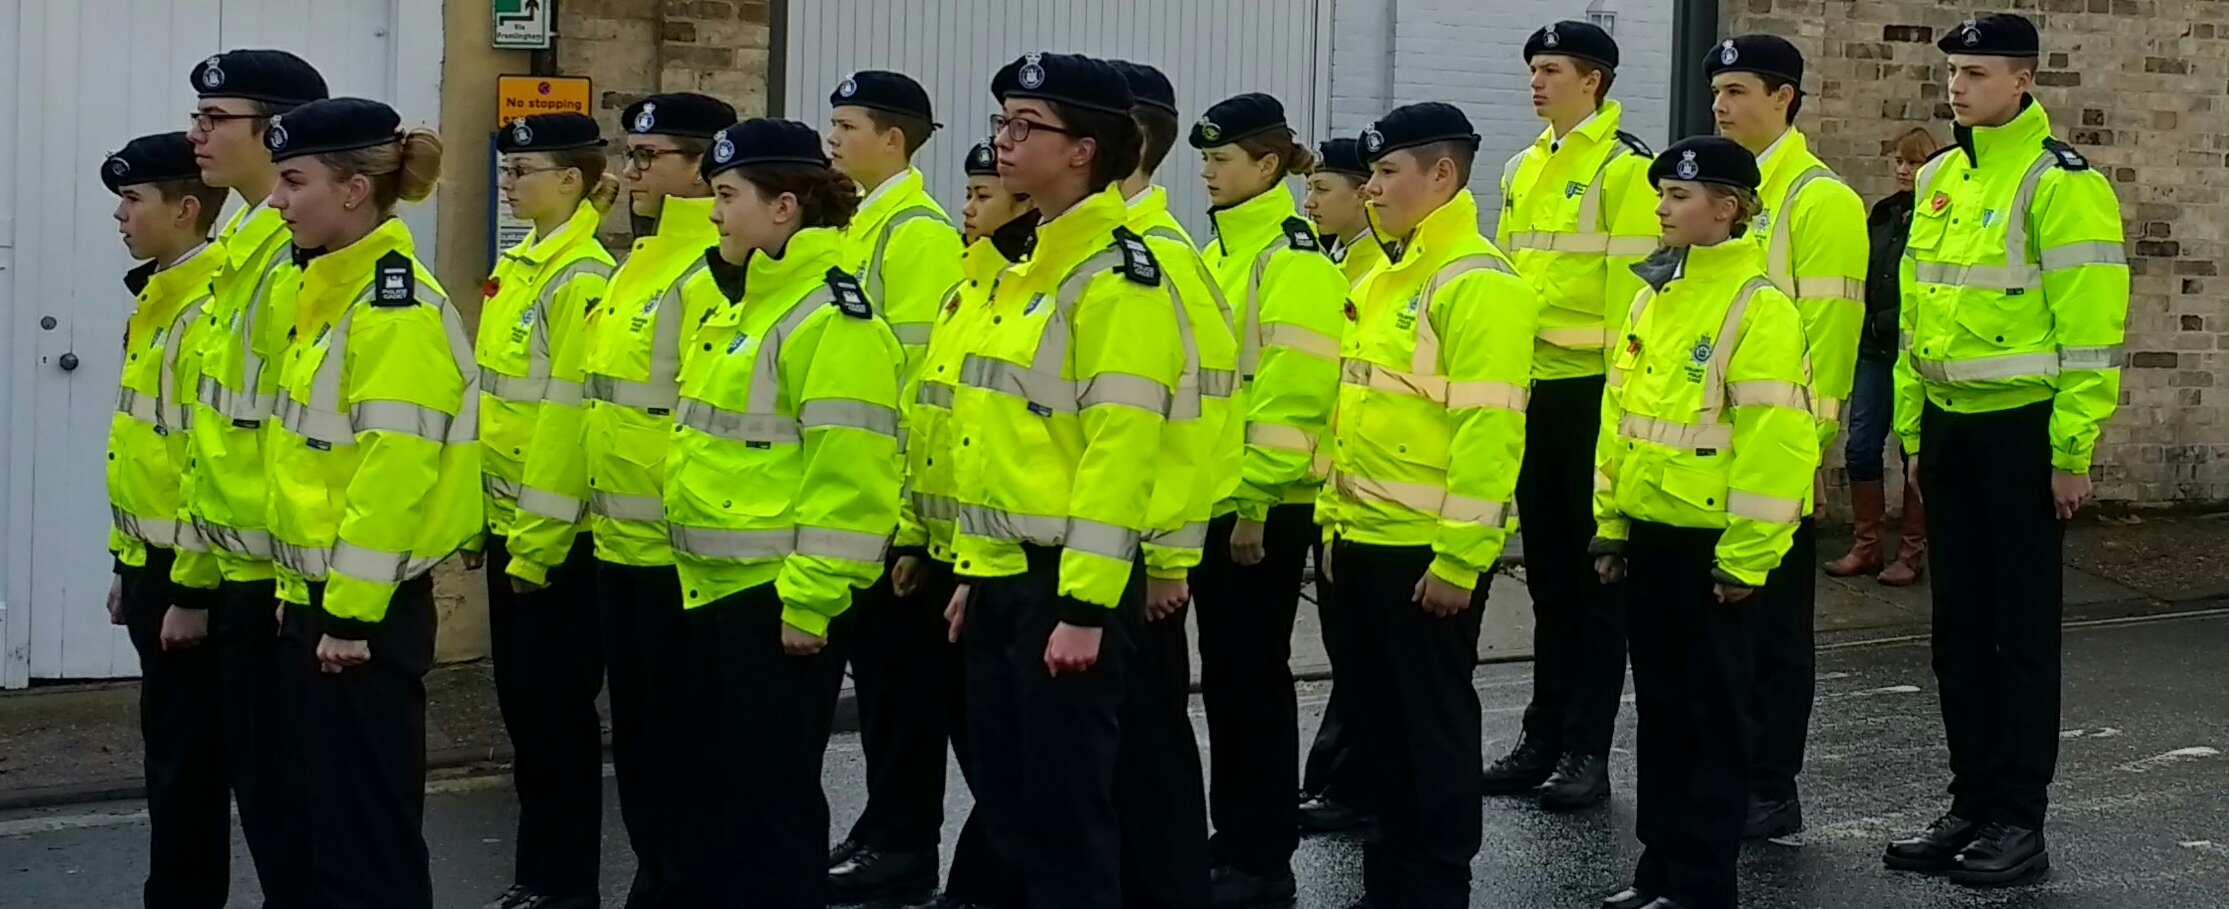 suffolk police    emergency services cadets